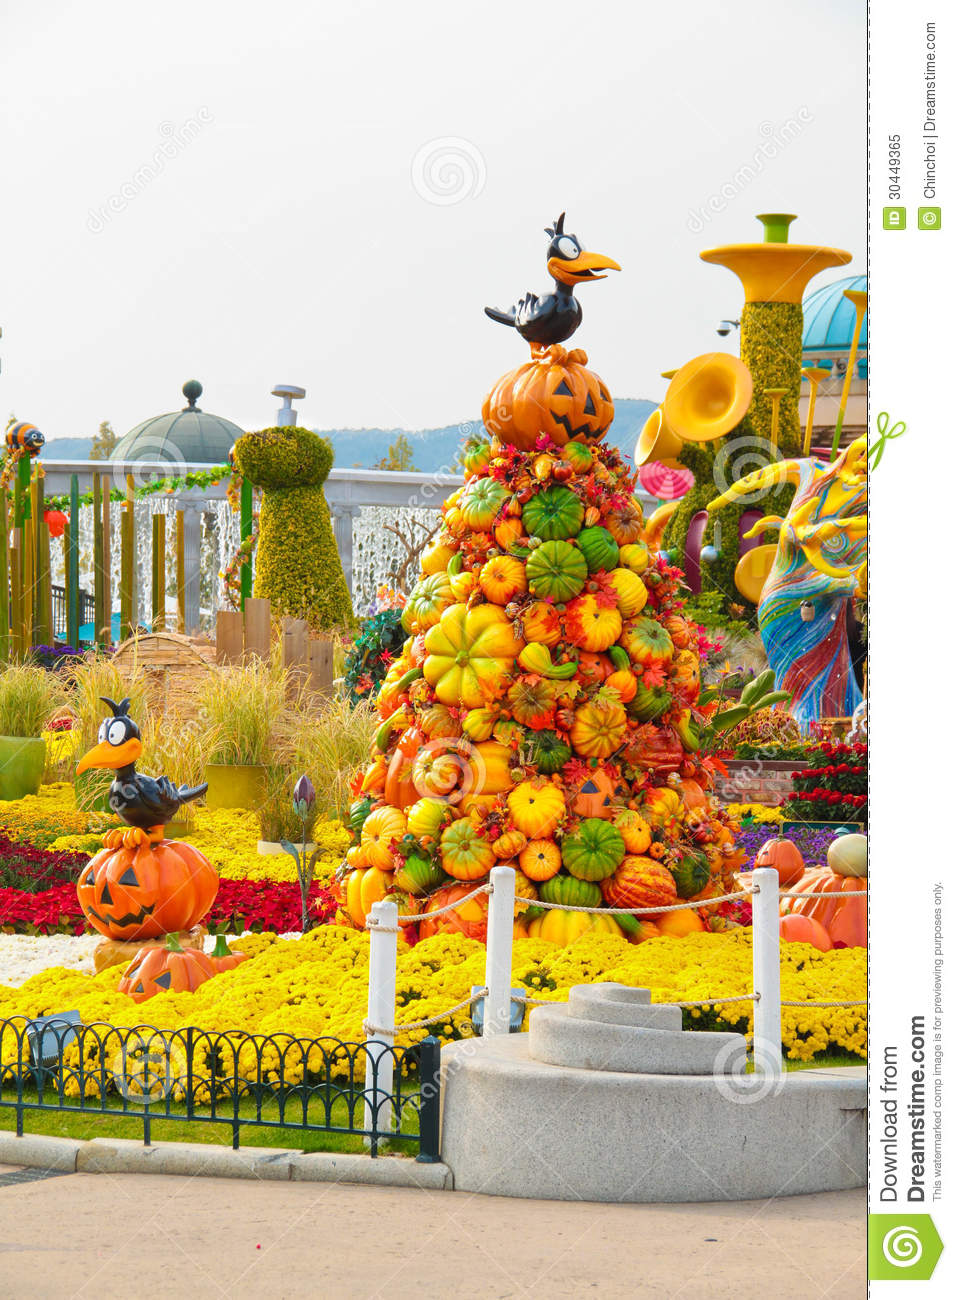 Halloween decoration at a theme park royalty free stock for Amusement park decoration ideas